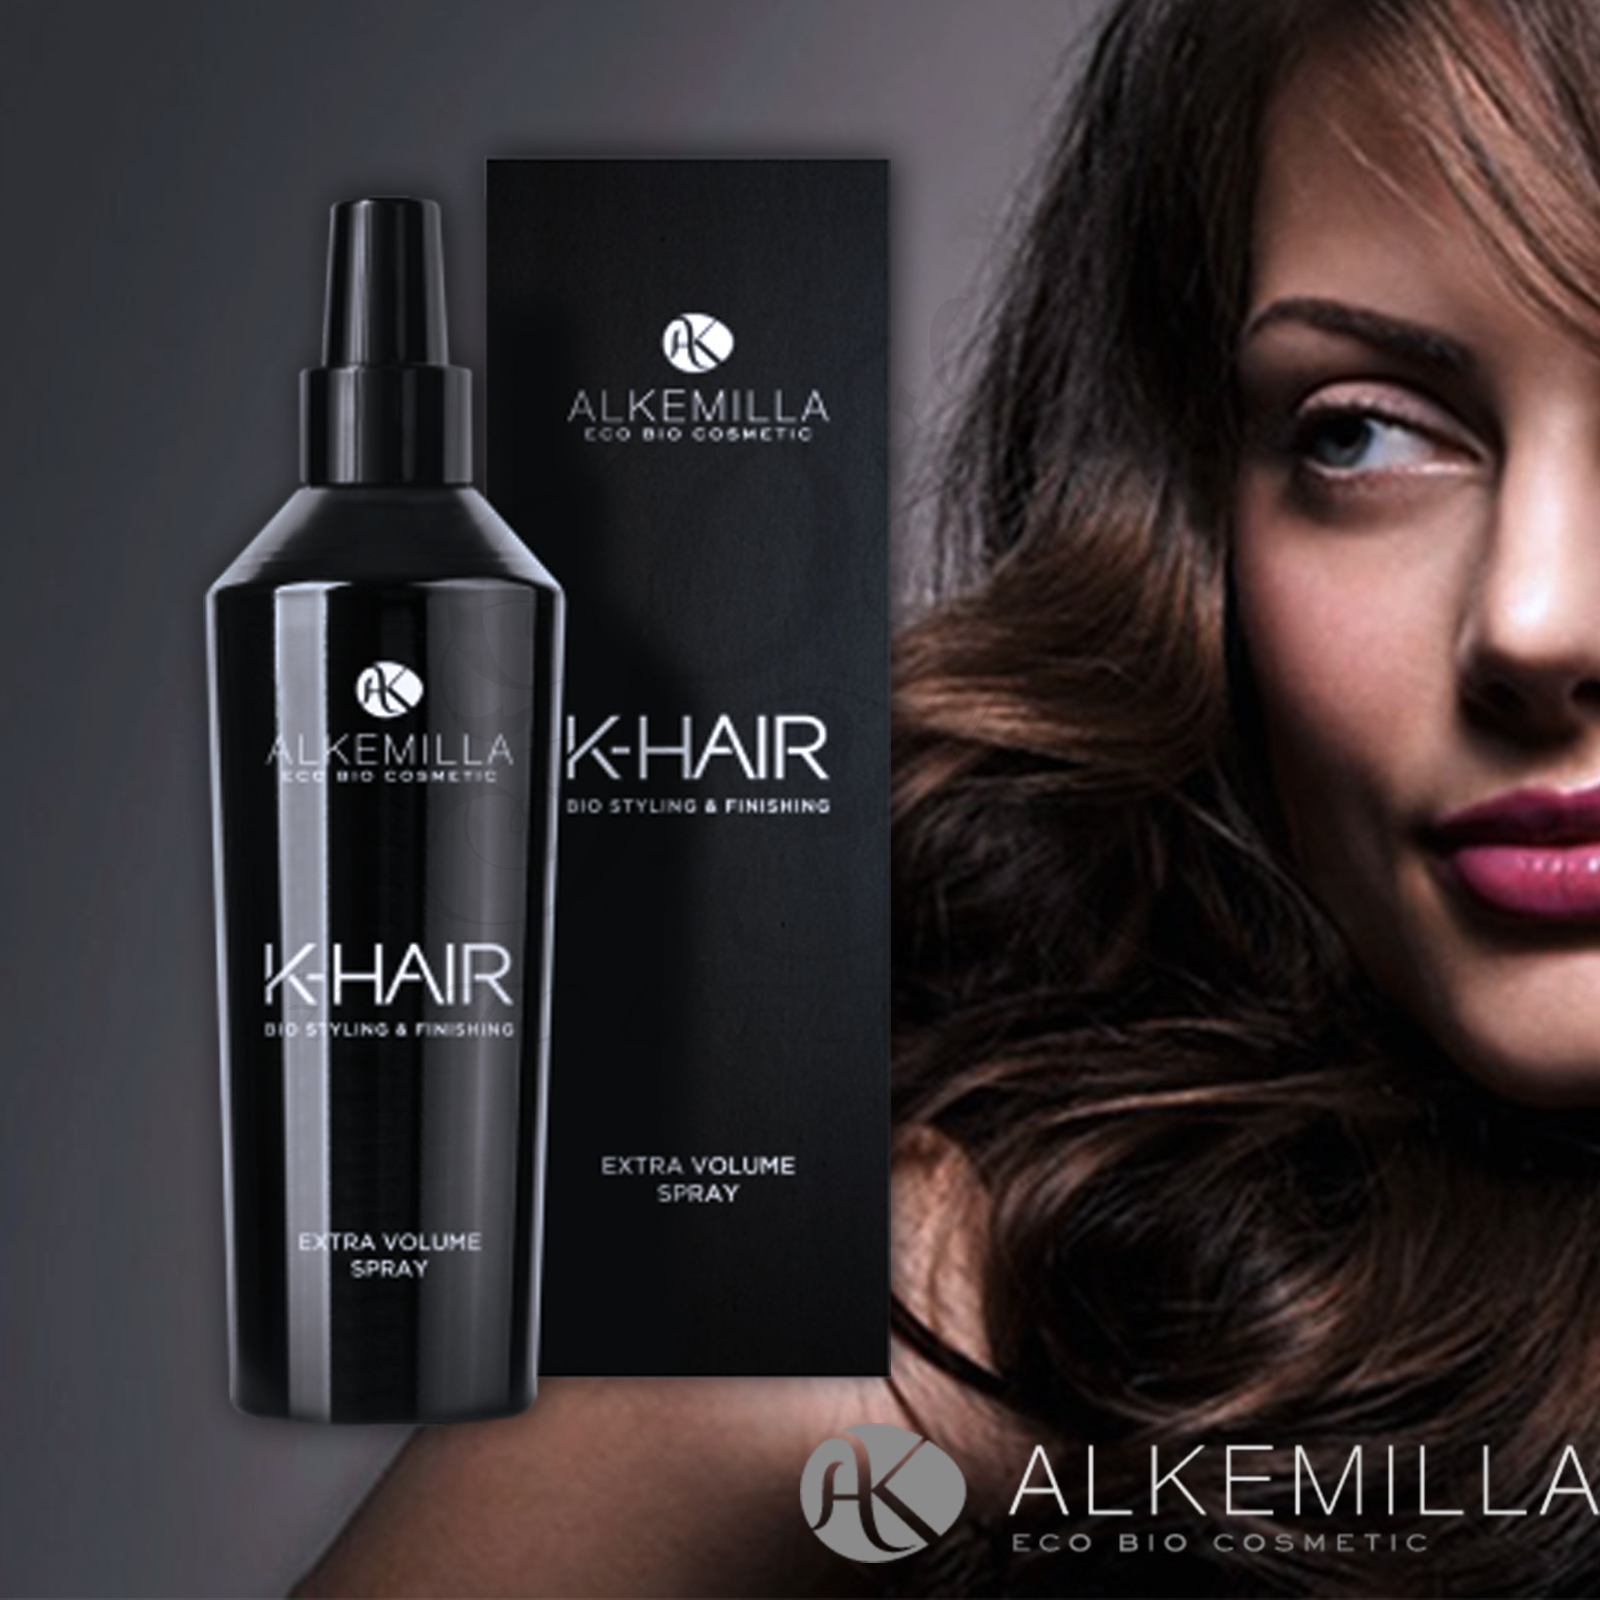 ALKEMILLA K-HAIR SPRAY EXTRA VOLUME